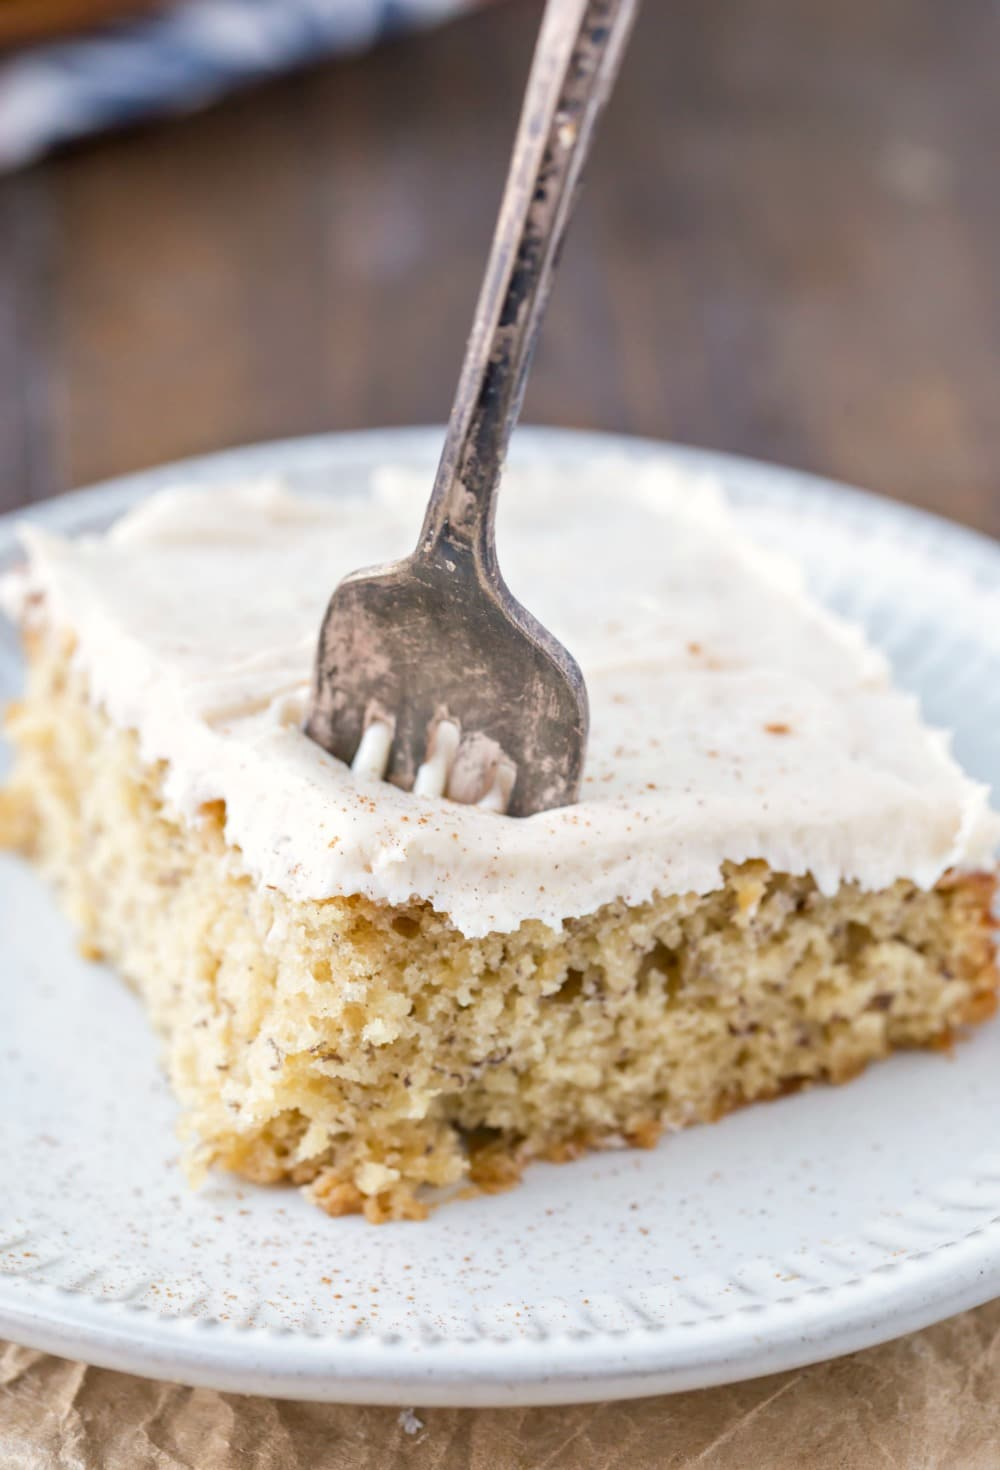 Banana Cake with Cream Cheese Frosting on a white plate with a silver fork